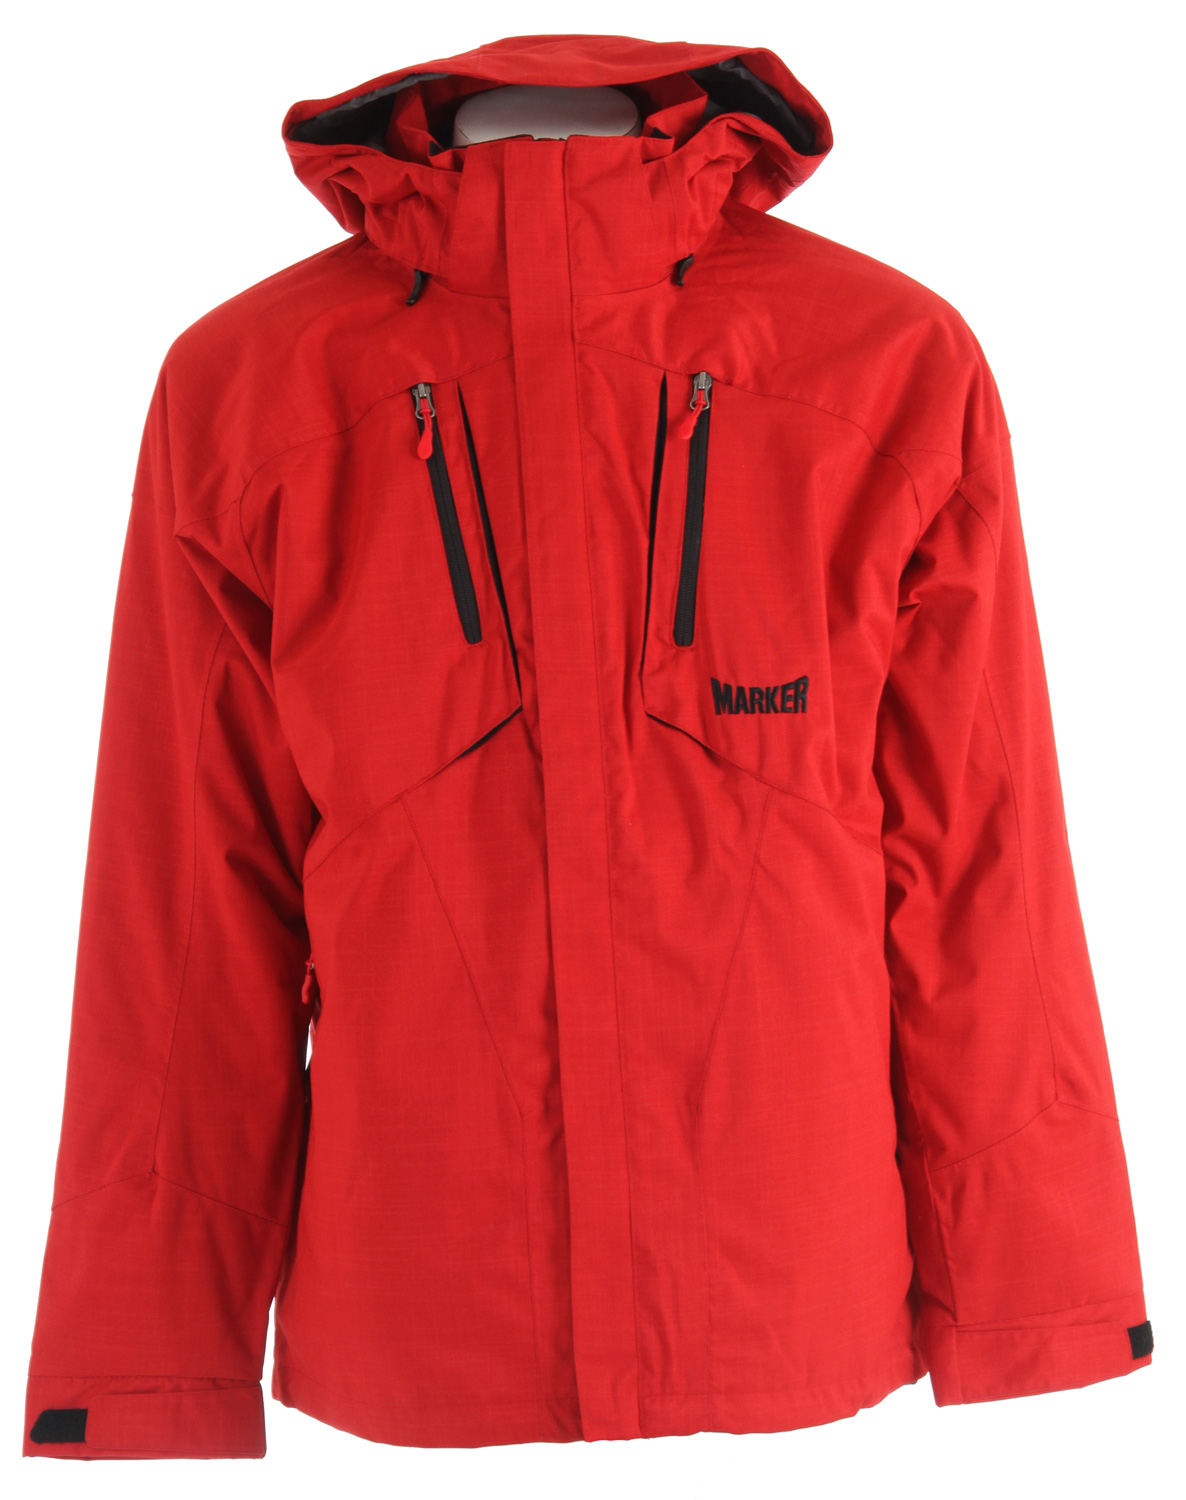 "Ski Key Features of the Marker Cornice 3-In-1 Ski Jacket: 5,000mm Waterproof 5,000g Breathability 100% polyester, tonal texture, 5,000mm breathability/waterproofness, windproof Embossed taffeta lining, brushed tricot, power mesh CB Length 32"" Adjustable cuffs with Velcro closure Articulated elbows Brushed tricot lined pockets Center front draft flap Chest pocket Fully seam sealed Hand pockets Media pocket One handed drawcord closure at bottom hem Raglan sleeve Underarm vents with YKK Zippers & power mesh backing YKK Zippers Zip off storm hood - $195.95"